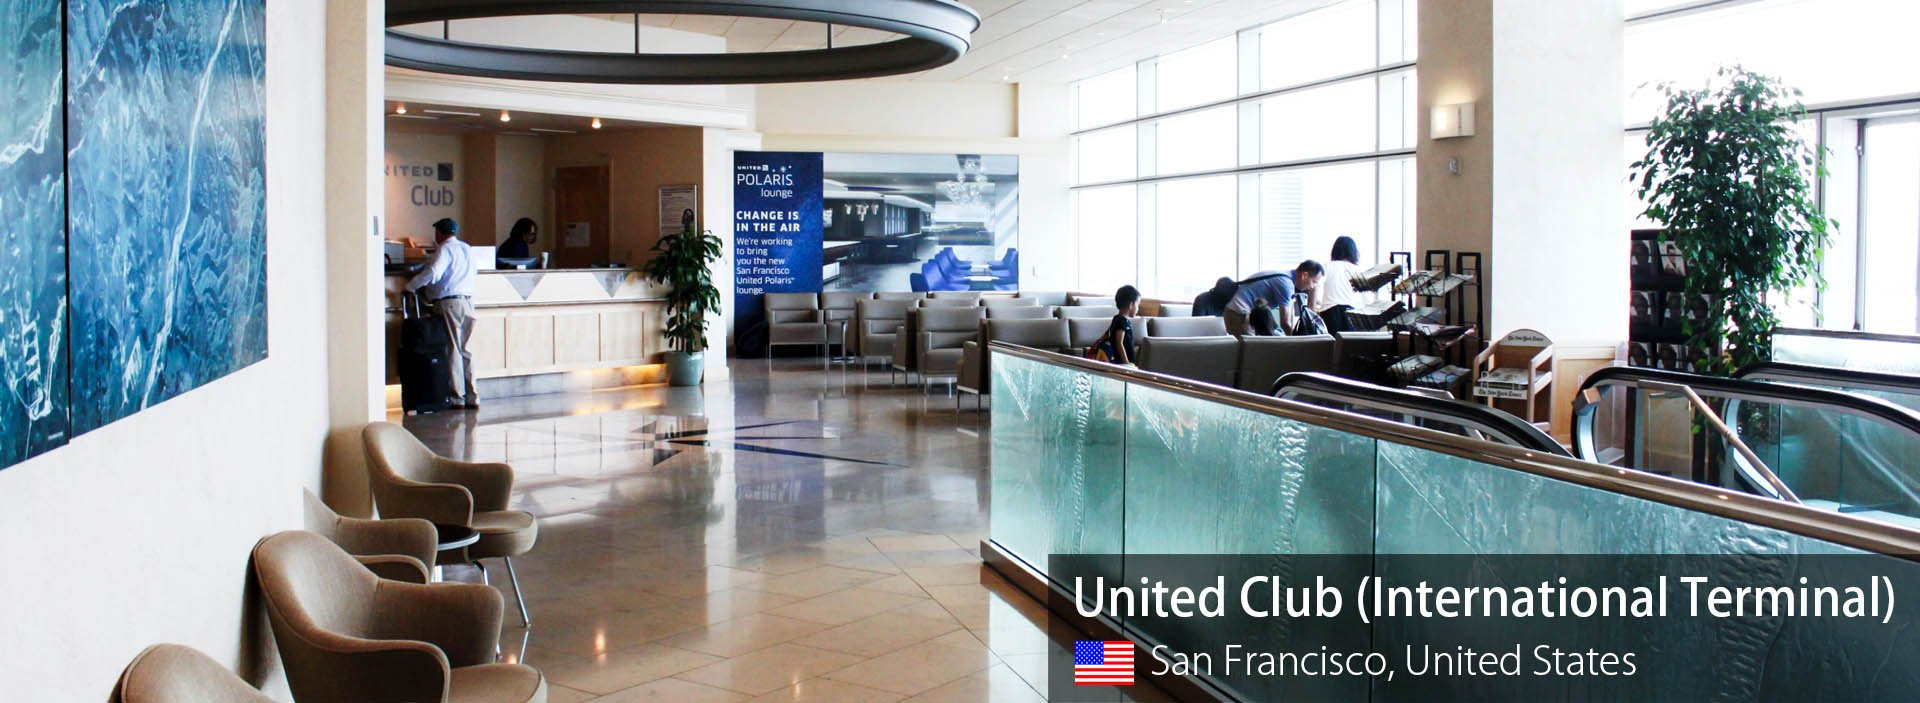 Lounge Review: United Club (International Terminal) at San Francisco International